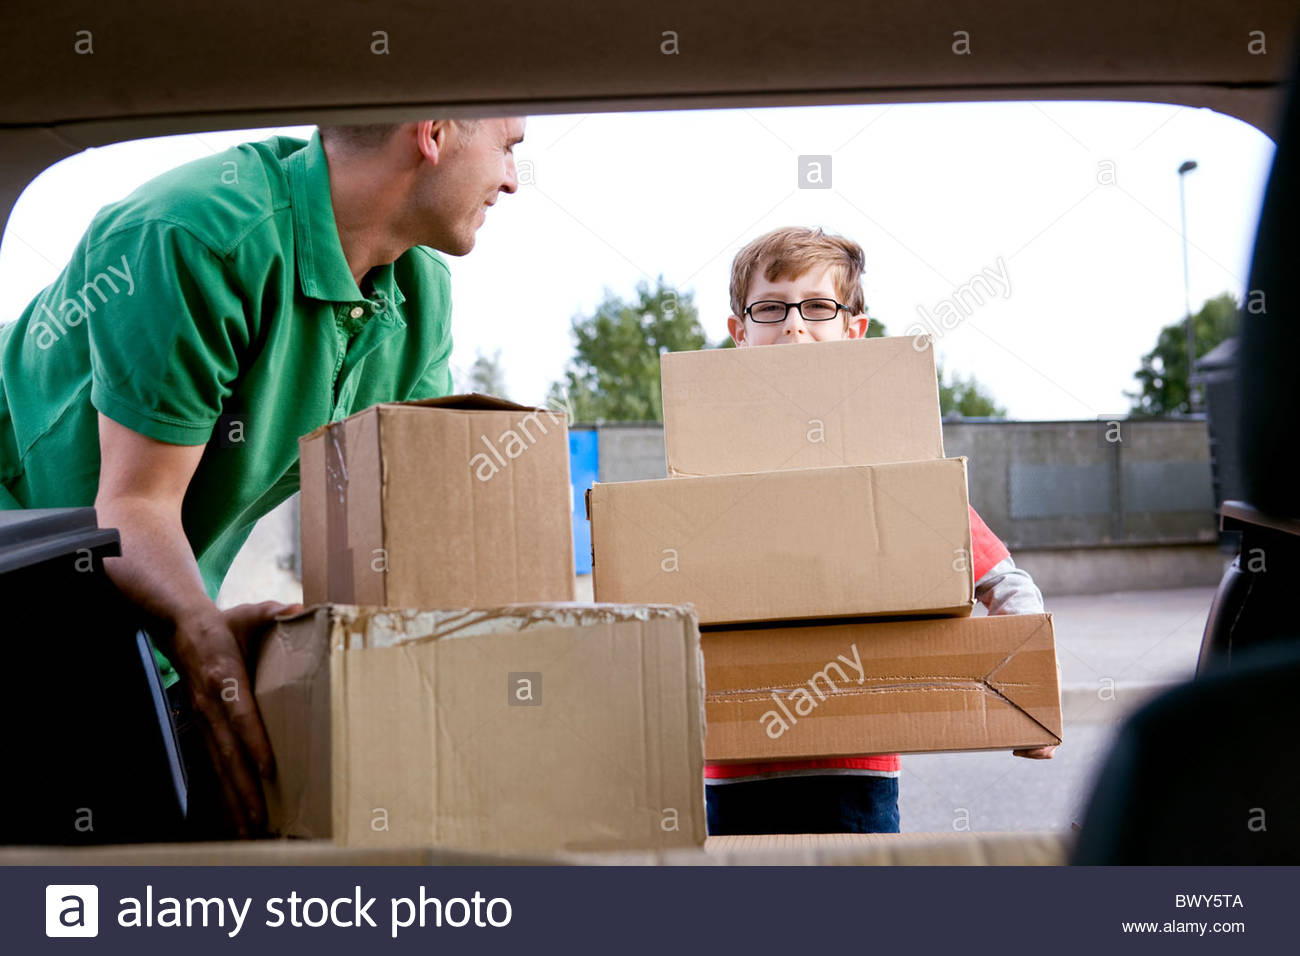 A son helping his father recycle cardboard boxes - Stock Image